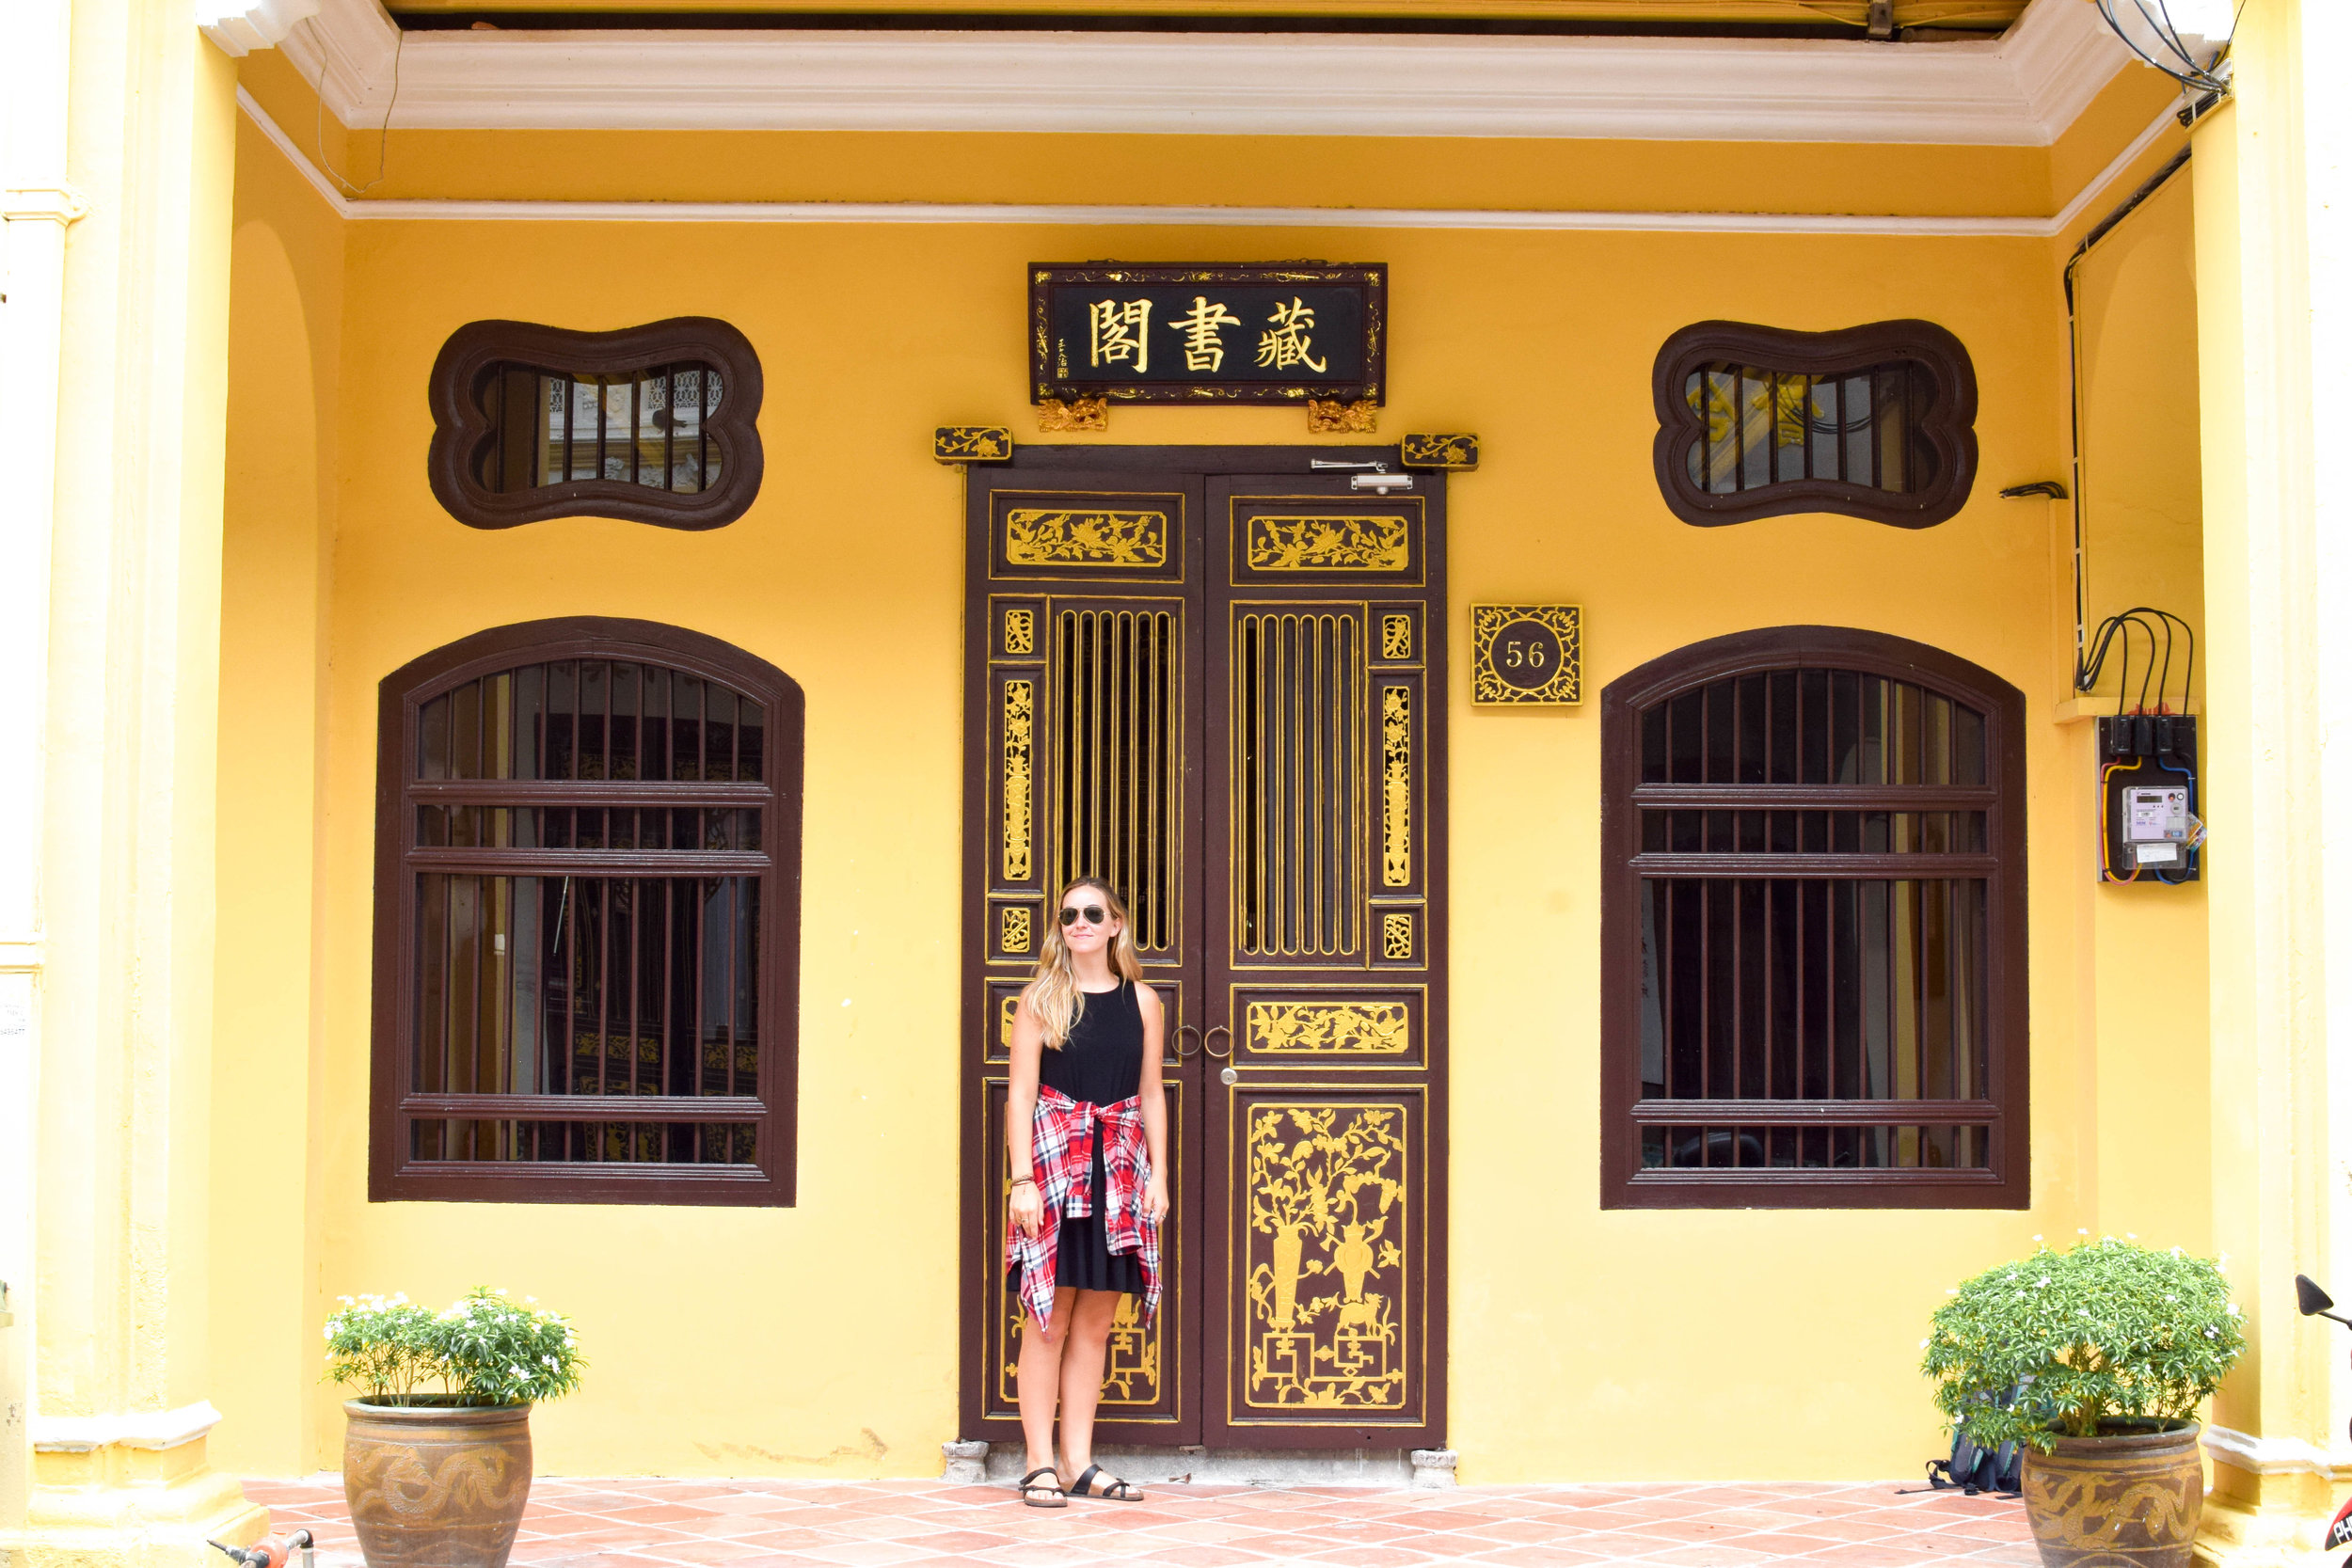 One of the colorful doorways near our hostel. Penang was full of them!